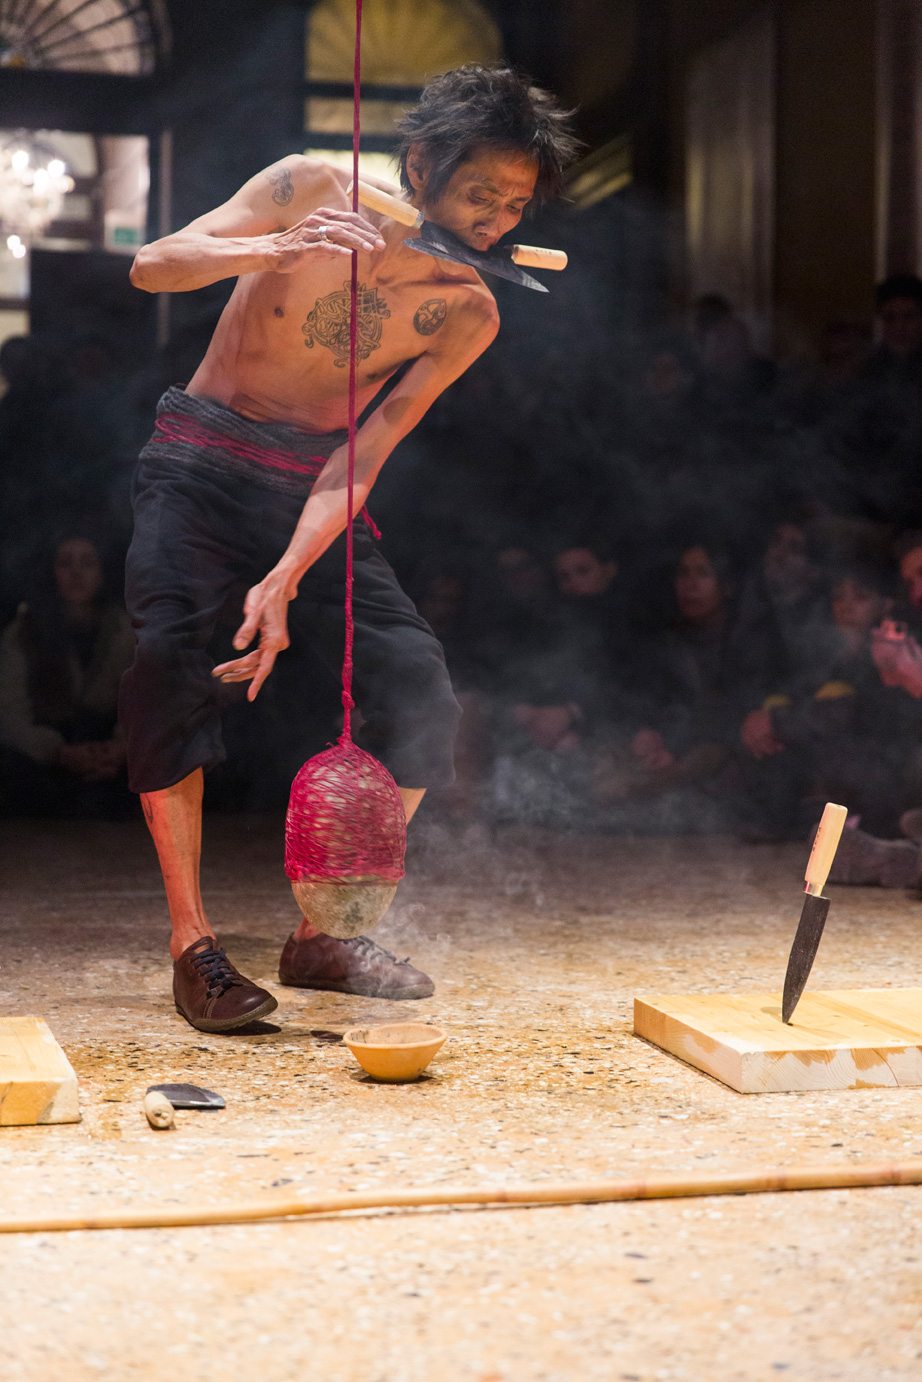 Zai Kuning, Loosing oneself to be with it and taken away by it. Venice International Performance Art Week (2014). Photograph by Monika Sobczak.